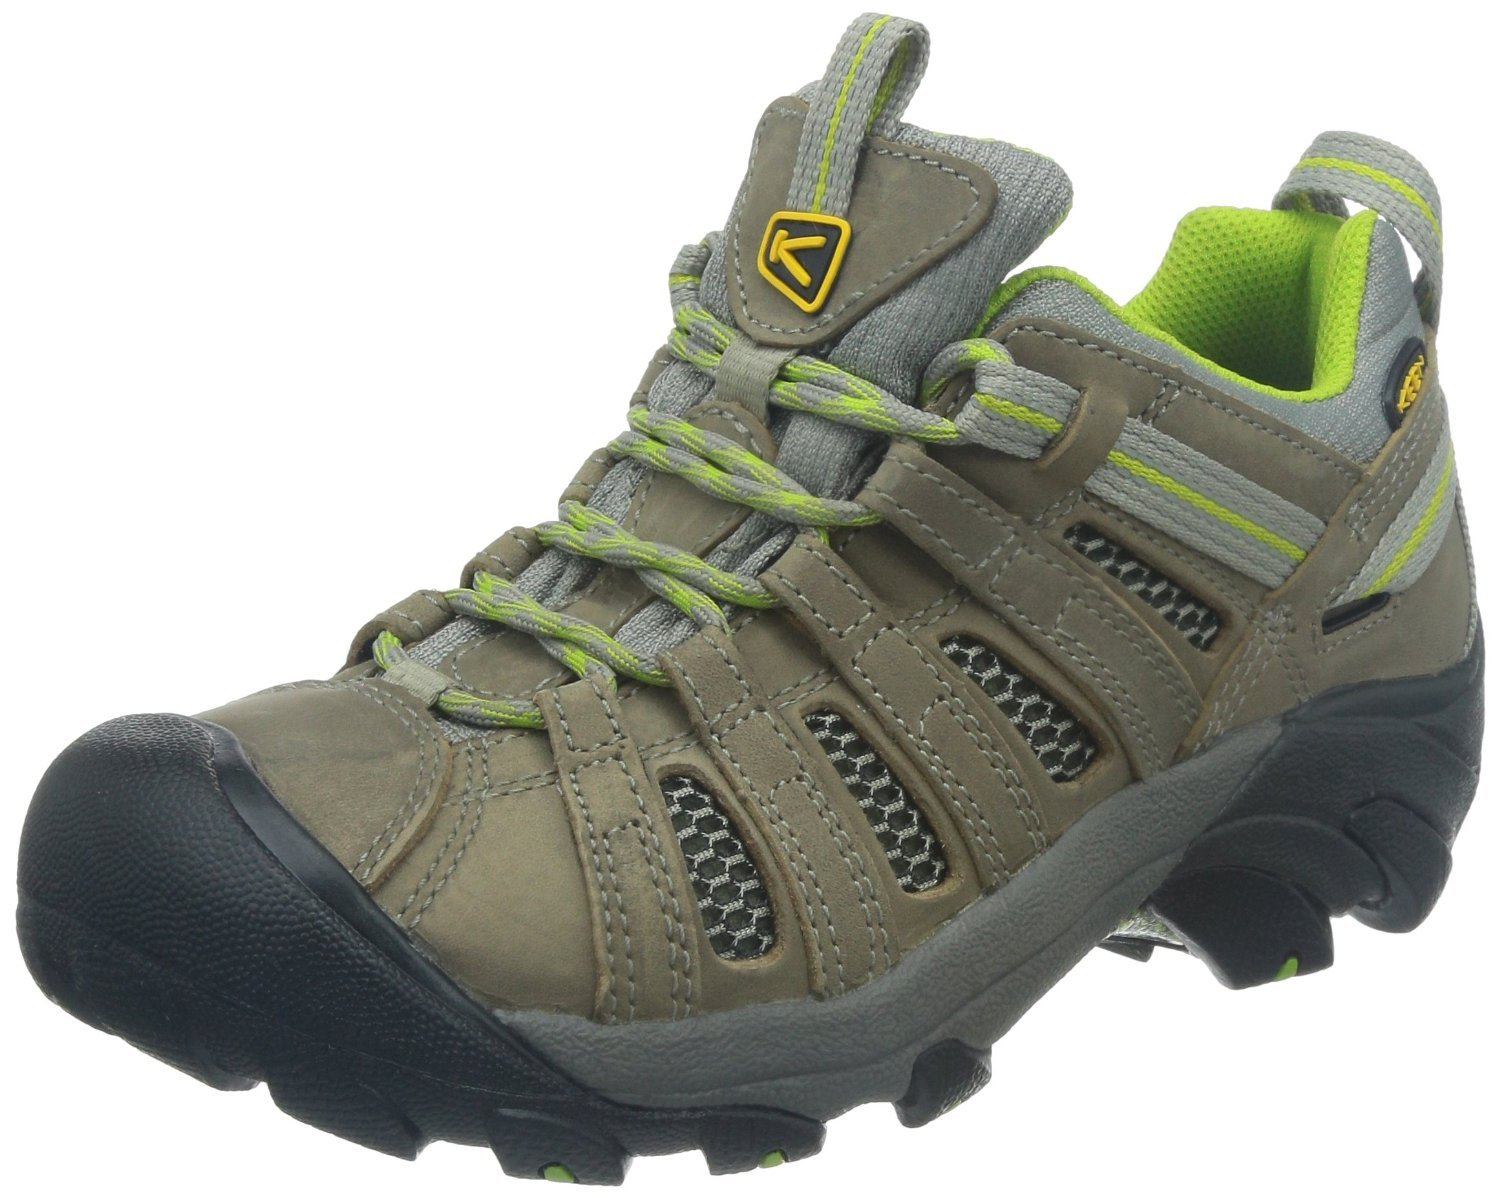 KEEN Women's Voyageur Hiking Shoe,Neutral Gray/Lime Green,8.5 M US